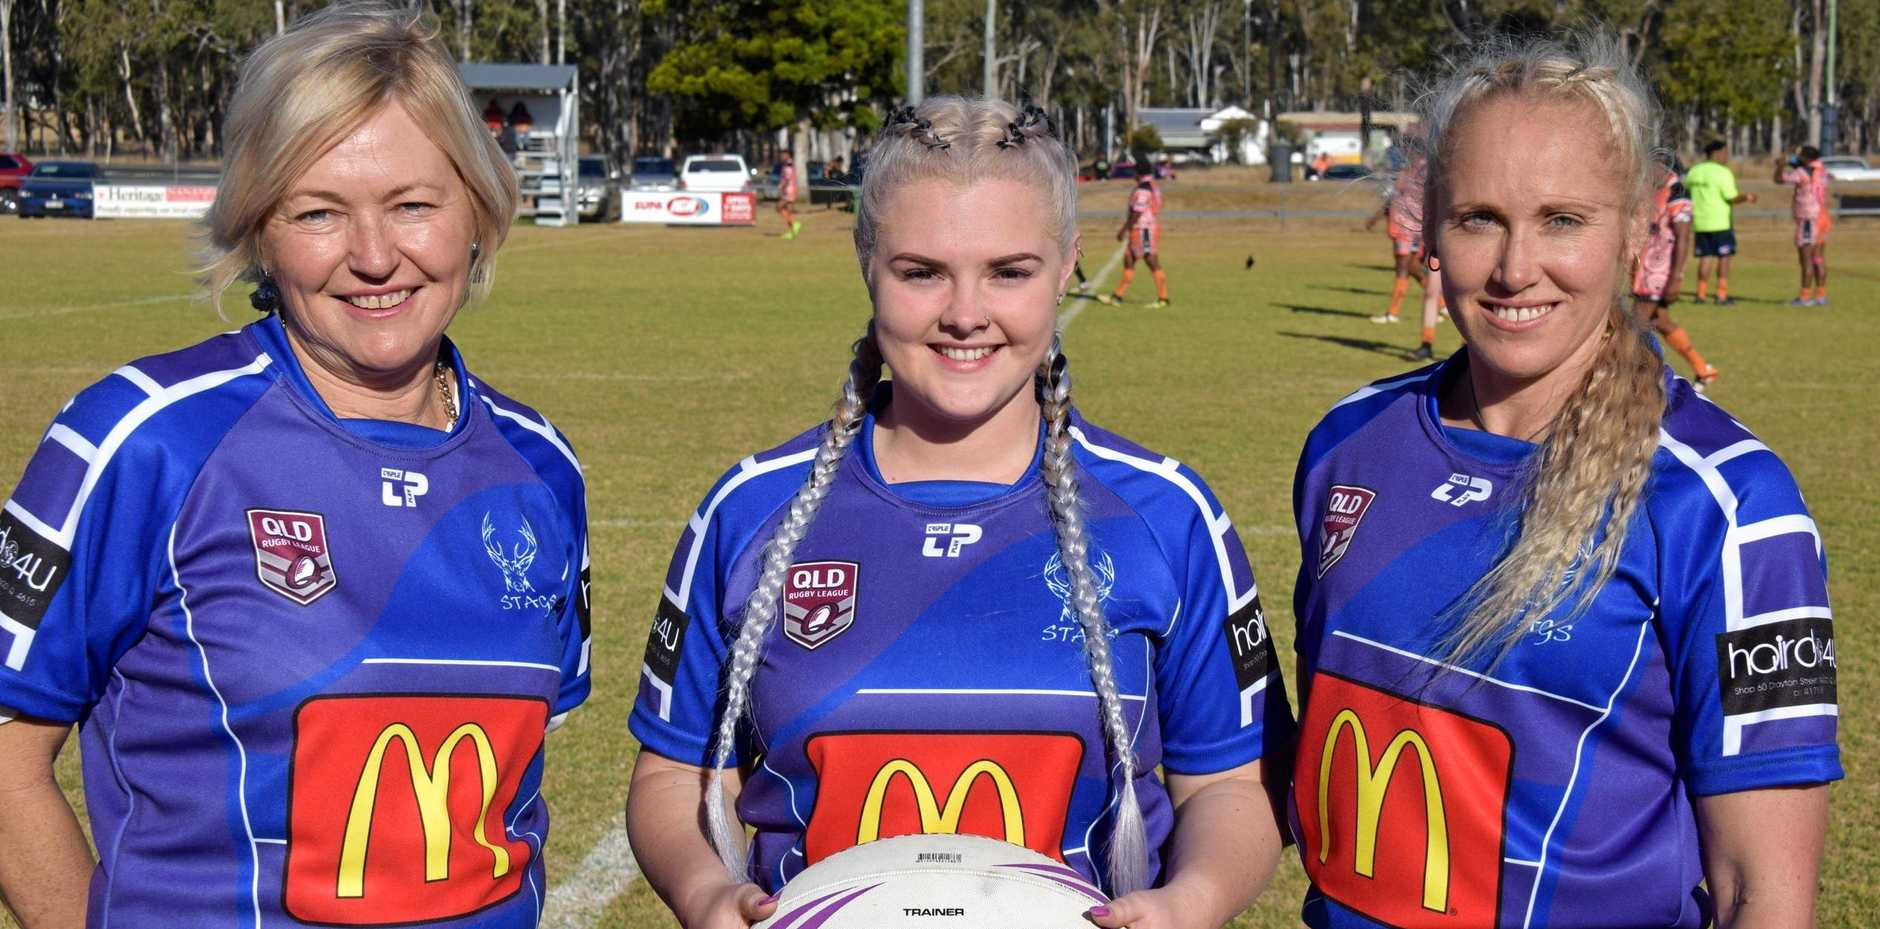 WOMEN IN LEAGUE: Andrea Steele, Ebony Smith and Joanne Alexander are acknowledged for their contribution to rugby league.